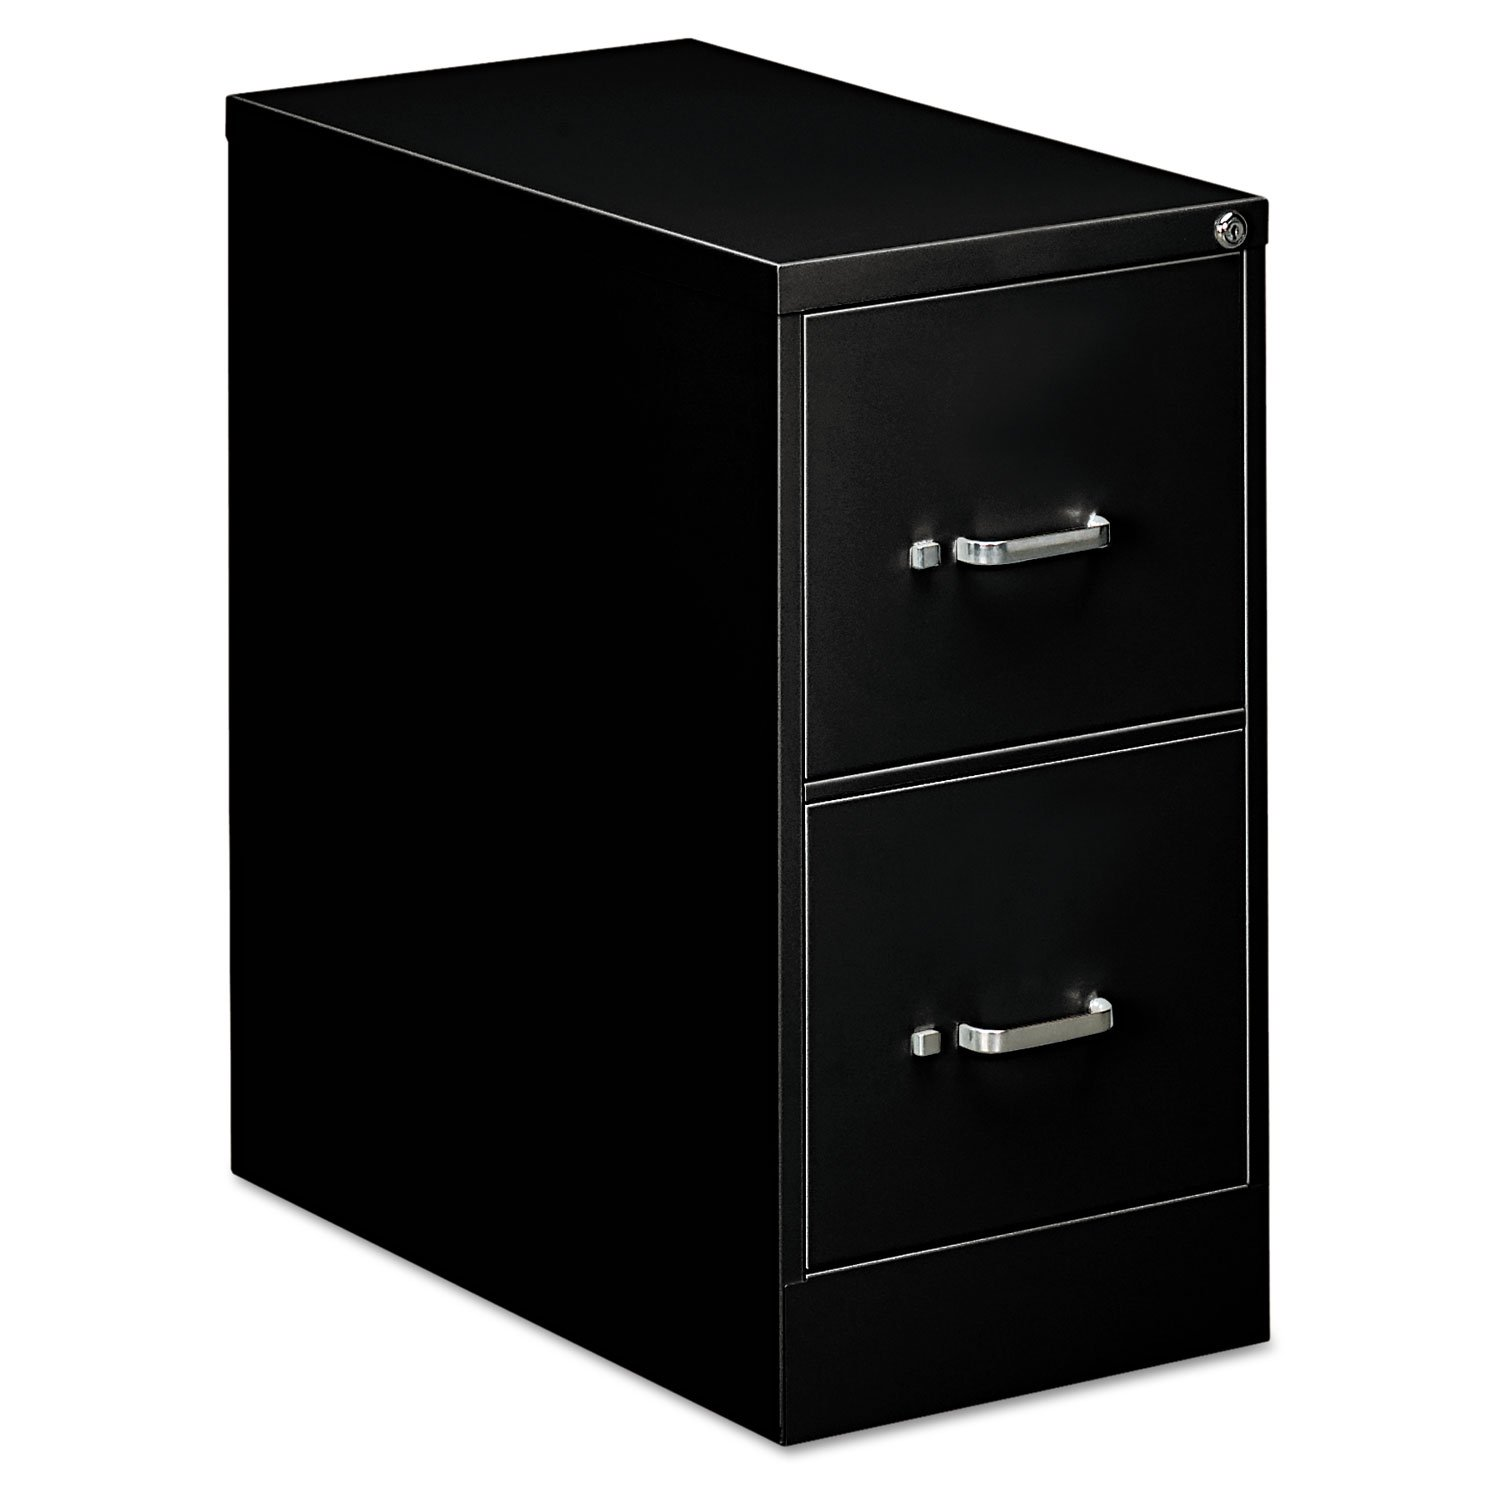 OIF 21109 Two-Drawer Economy Vertical File, 15w x 26-1/2d x 29h, Black